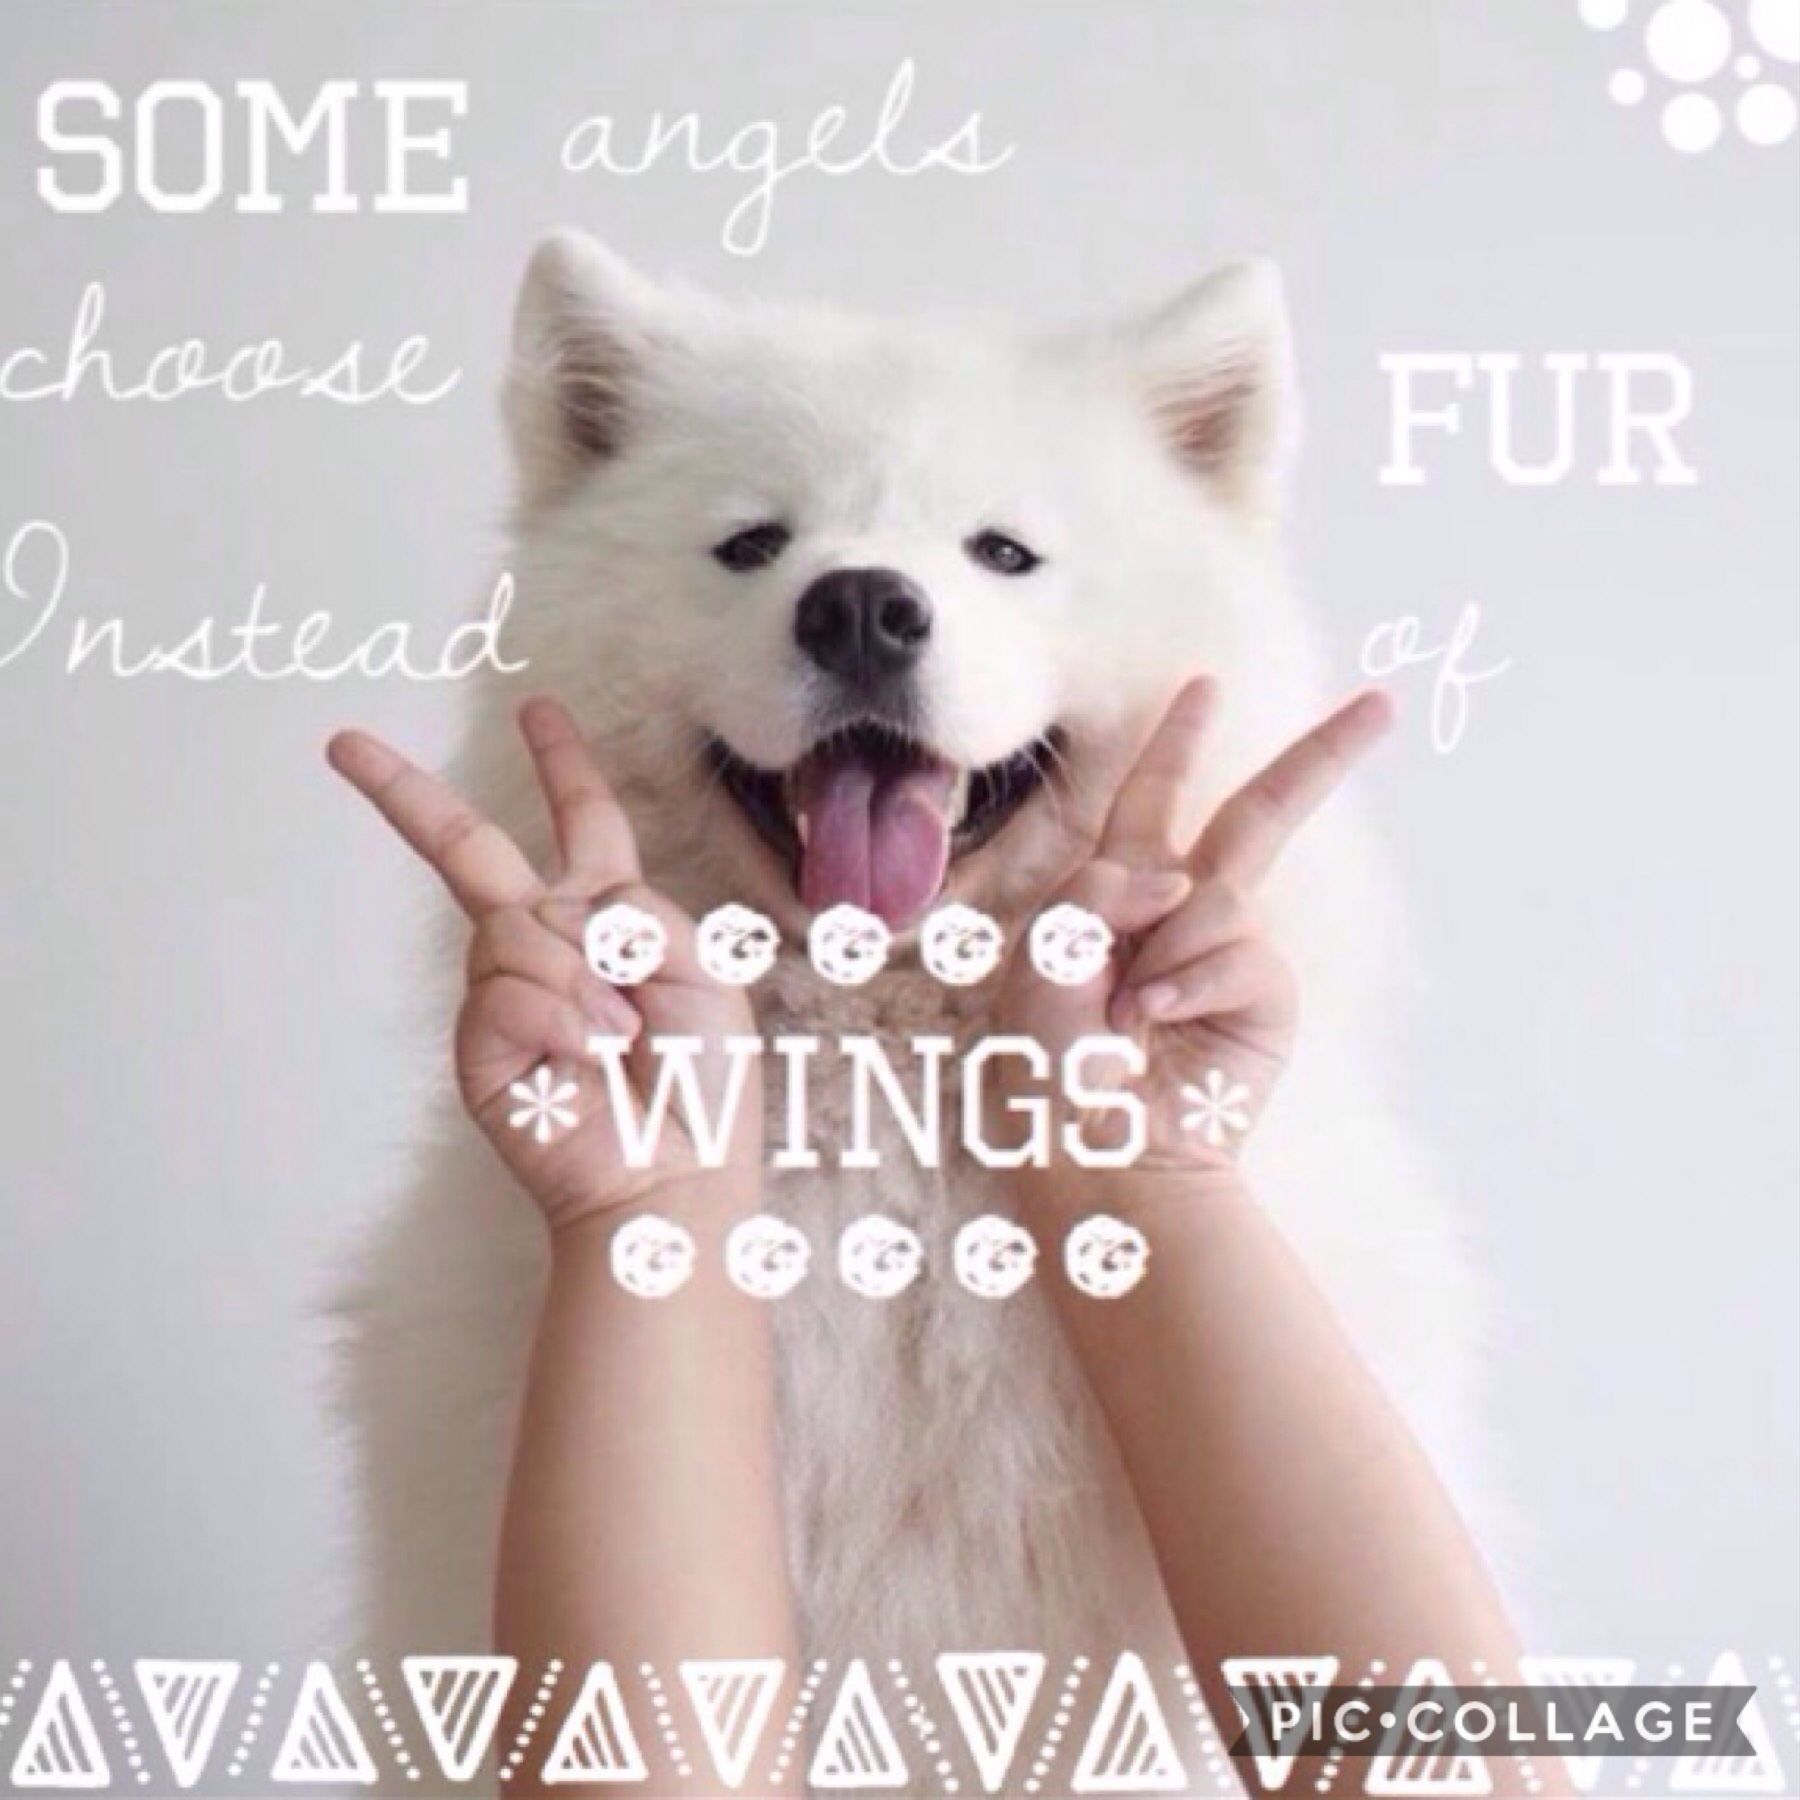 Tap This was a contest entry  and I thought it was kinda cute 😂 anyway I'm bored so you can comment whatever on here except for self advertising cause that's boring       lol no body is ever actually gonna comment on this